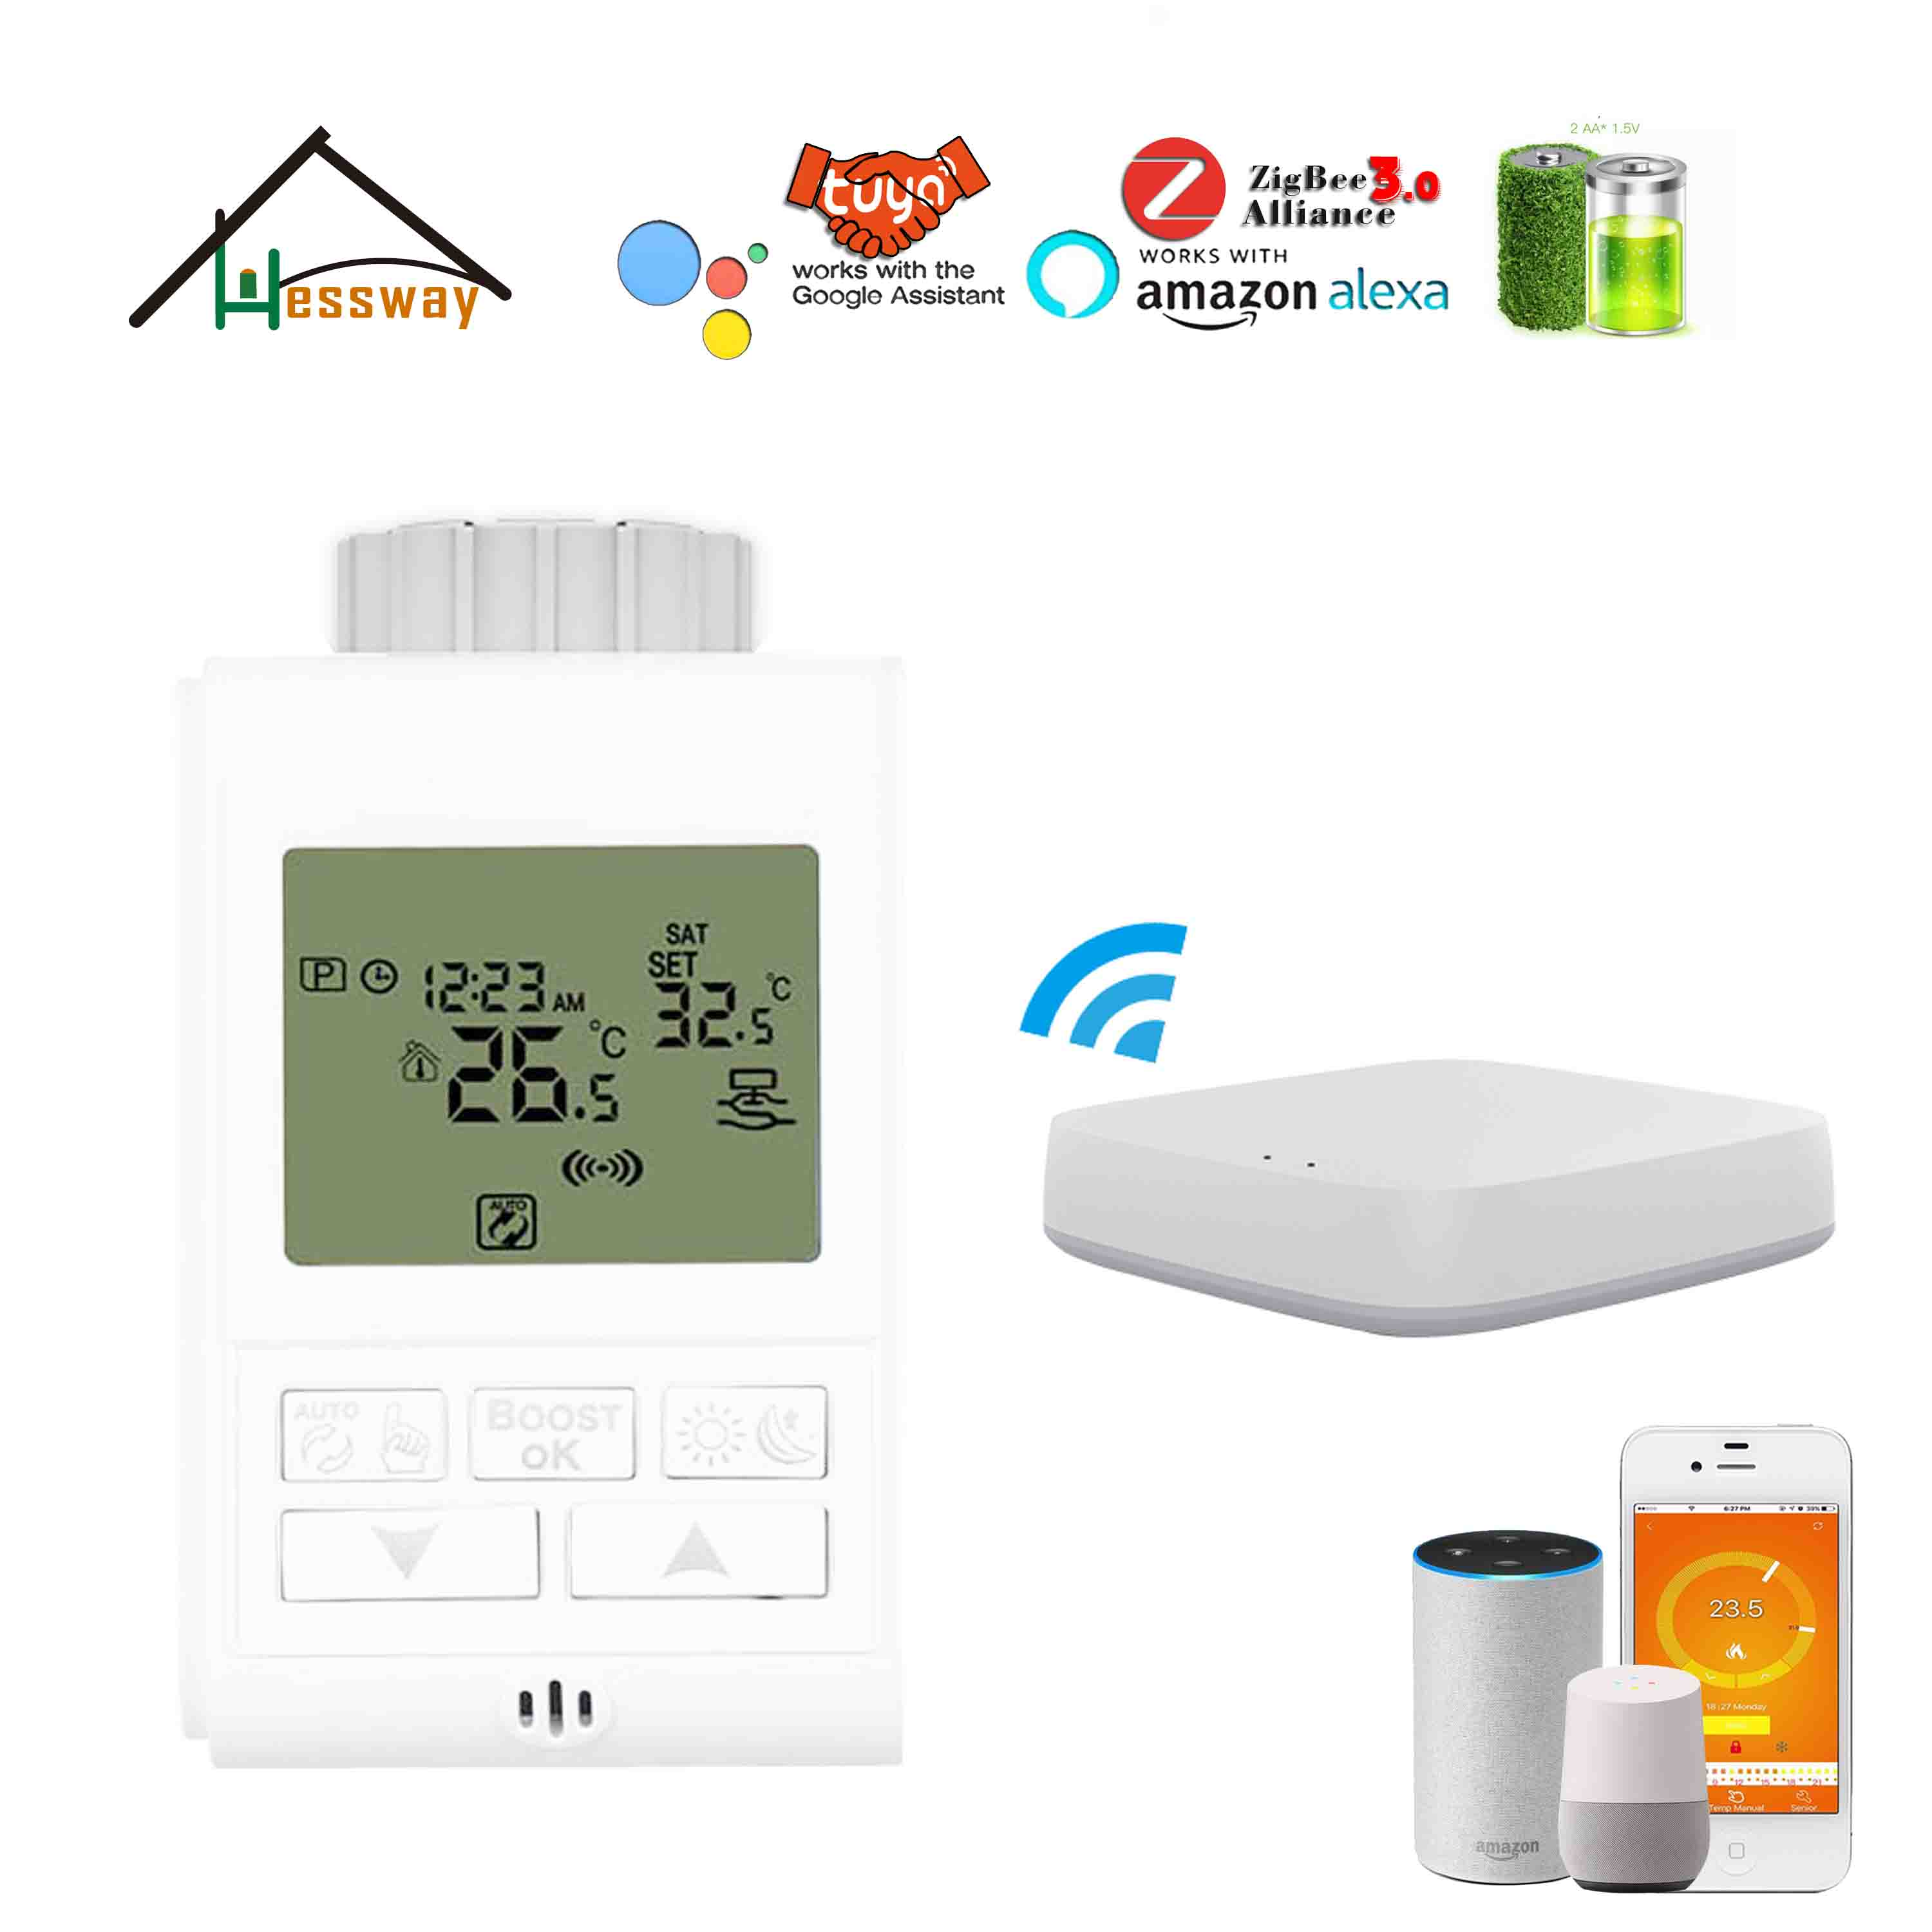 WIFI APP Controller Gateway Zigbee3.0 Radiator Thermostat For Route 4.5mm Check Valve Opening